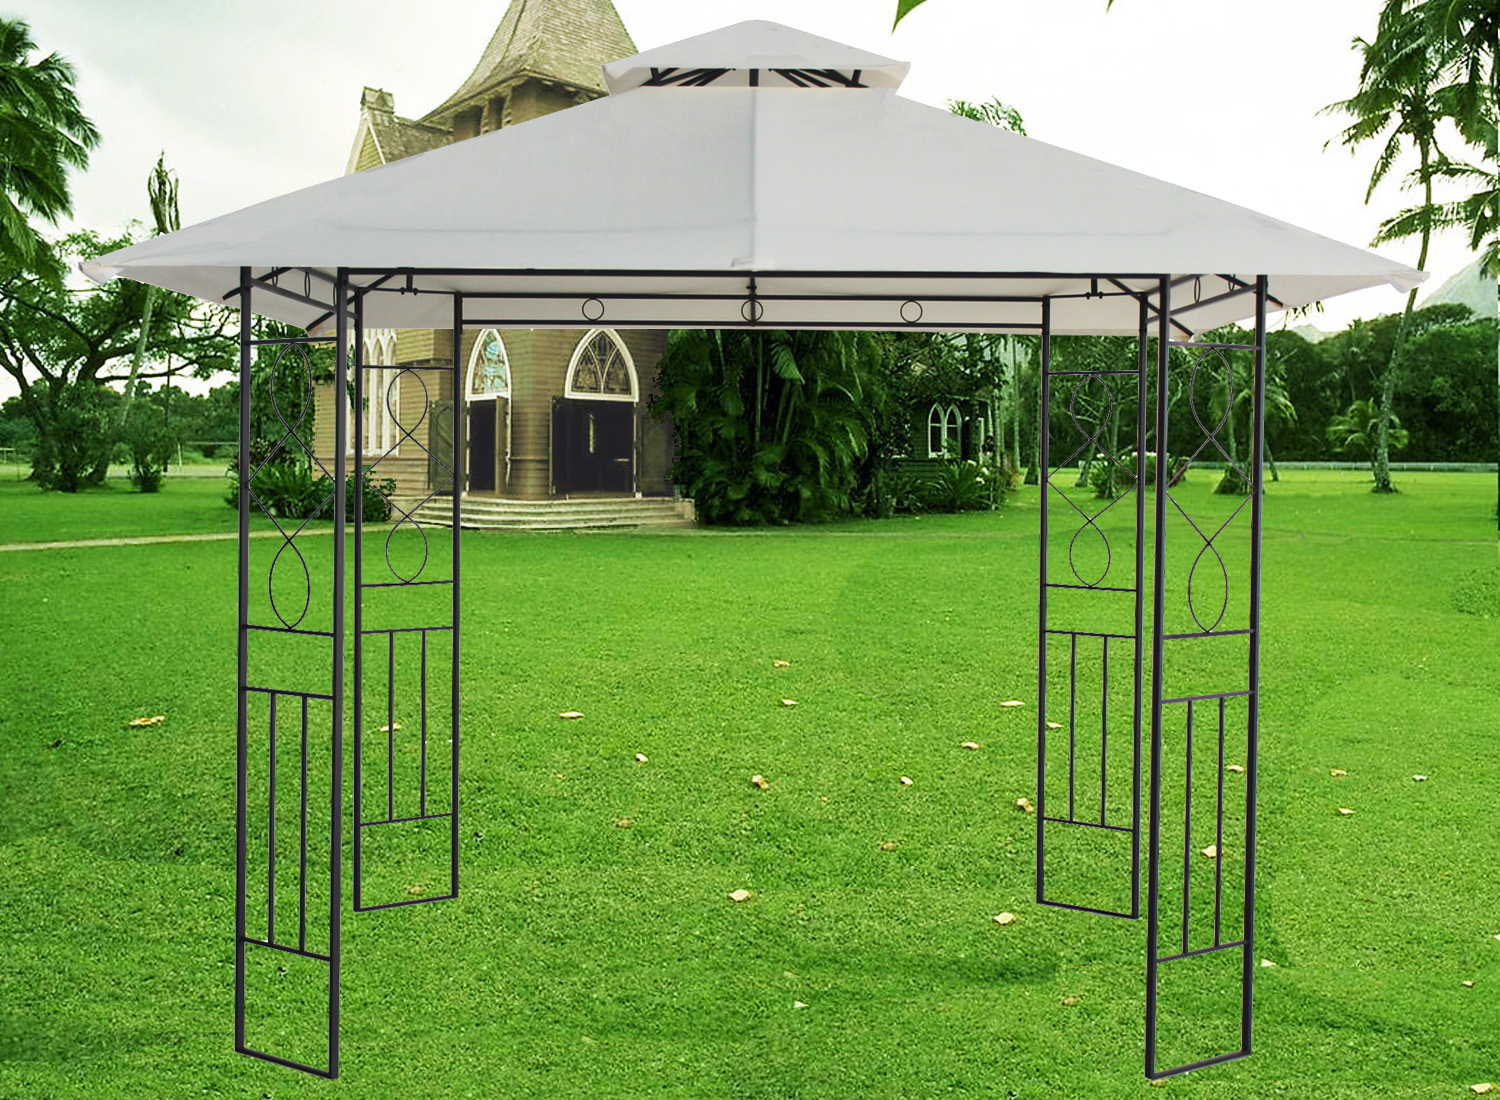 3x3m pavilion metal gazebo awning canopy sun shade shelter. Black Bedroom Furniture Sets. Home Design Ideas